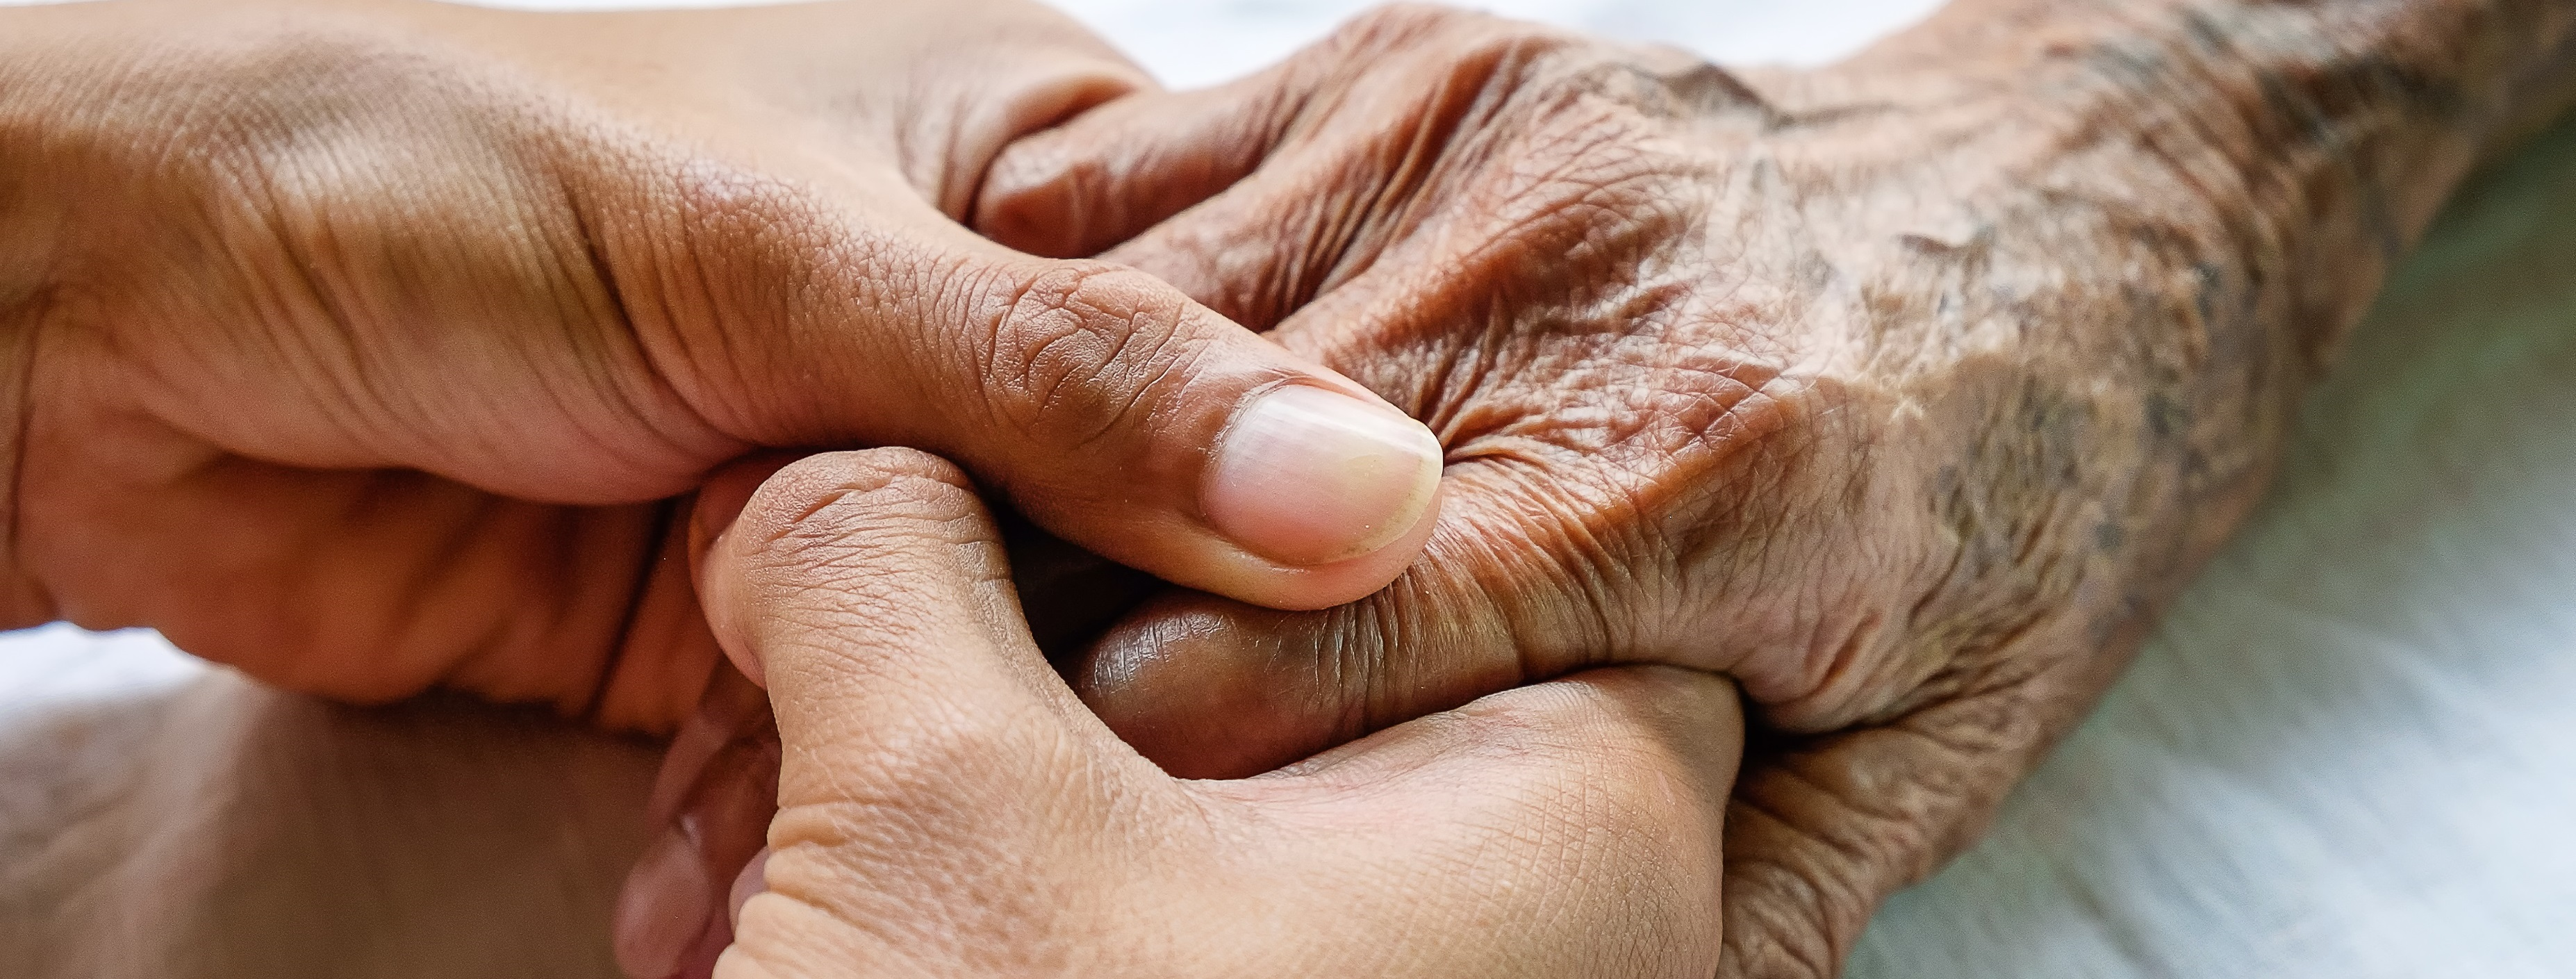 Study finds immigrants more likely to have inadequate palliative care